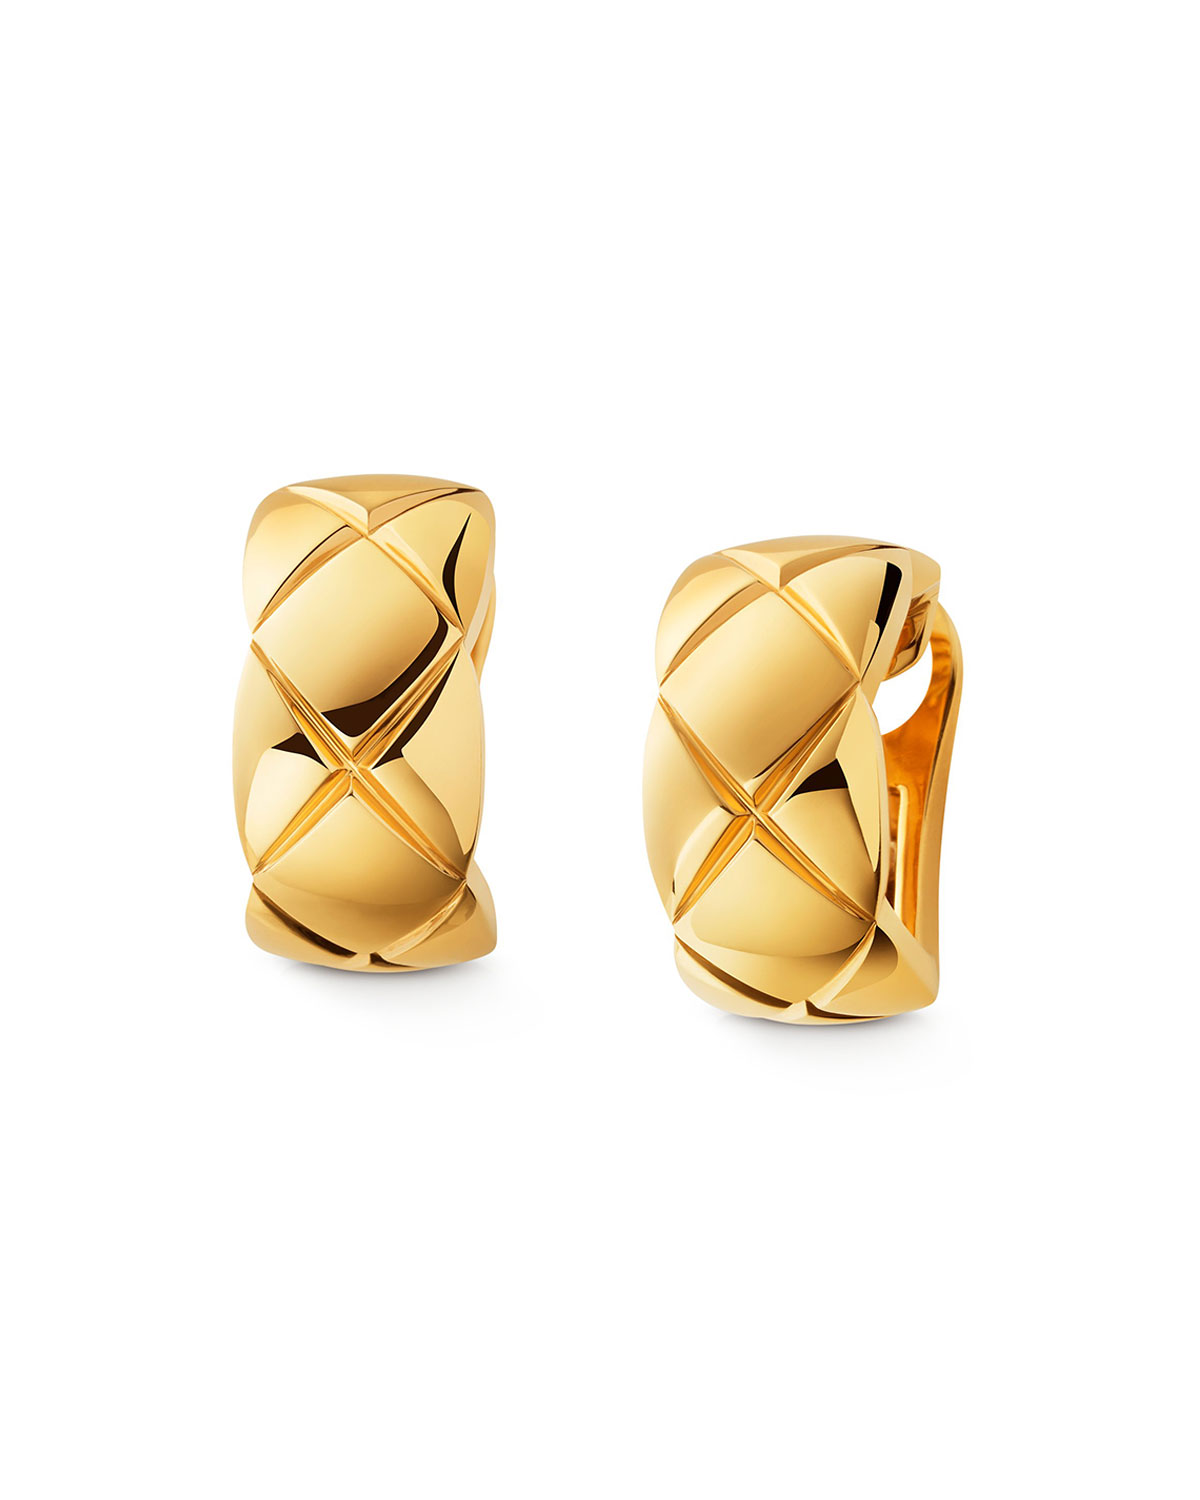 Chanel Coco Crush Earrings In 18k Yellow Gold